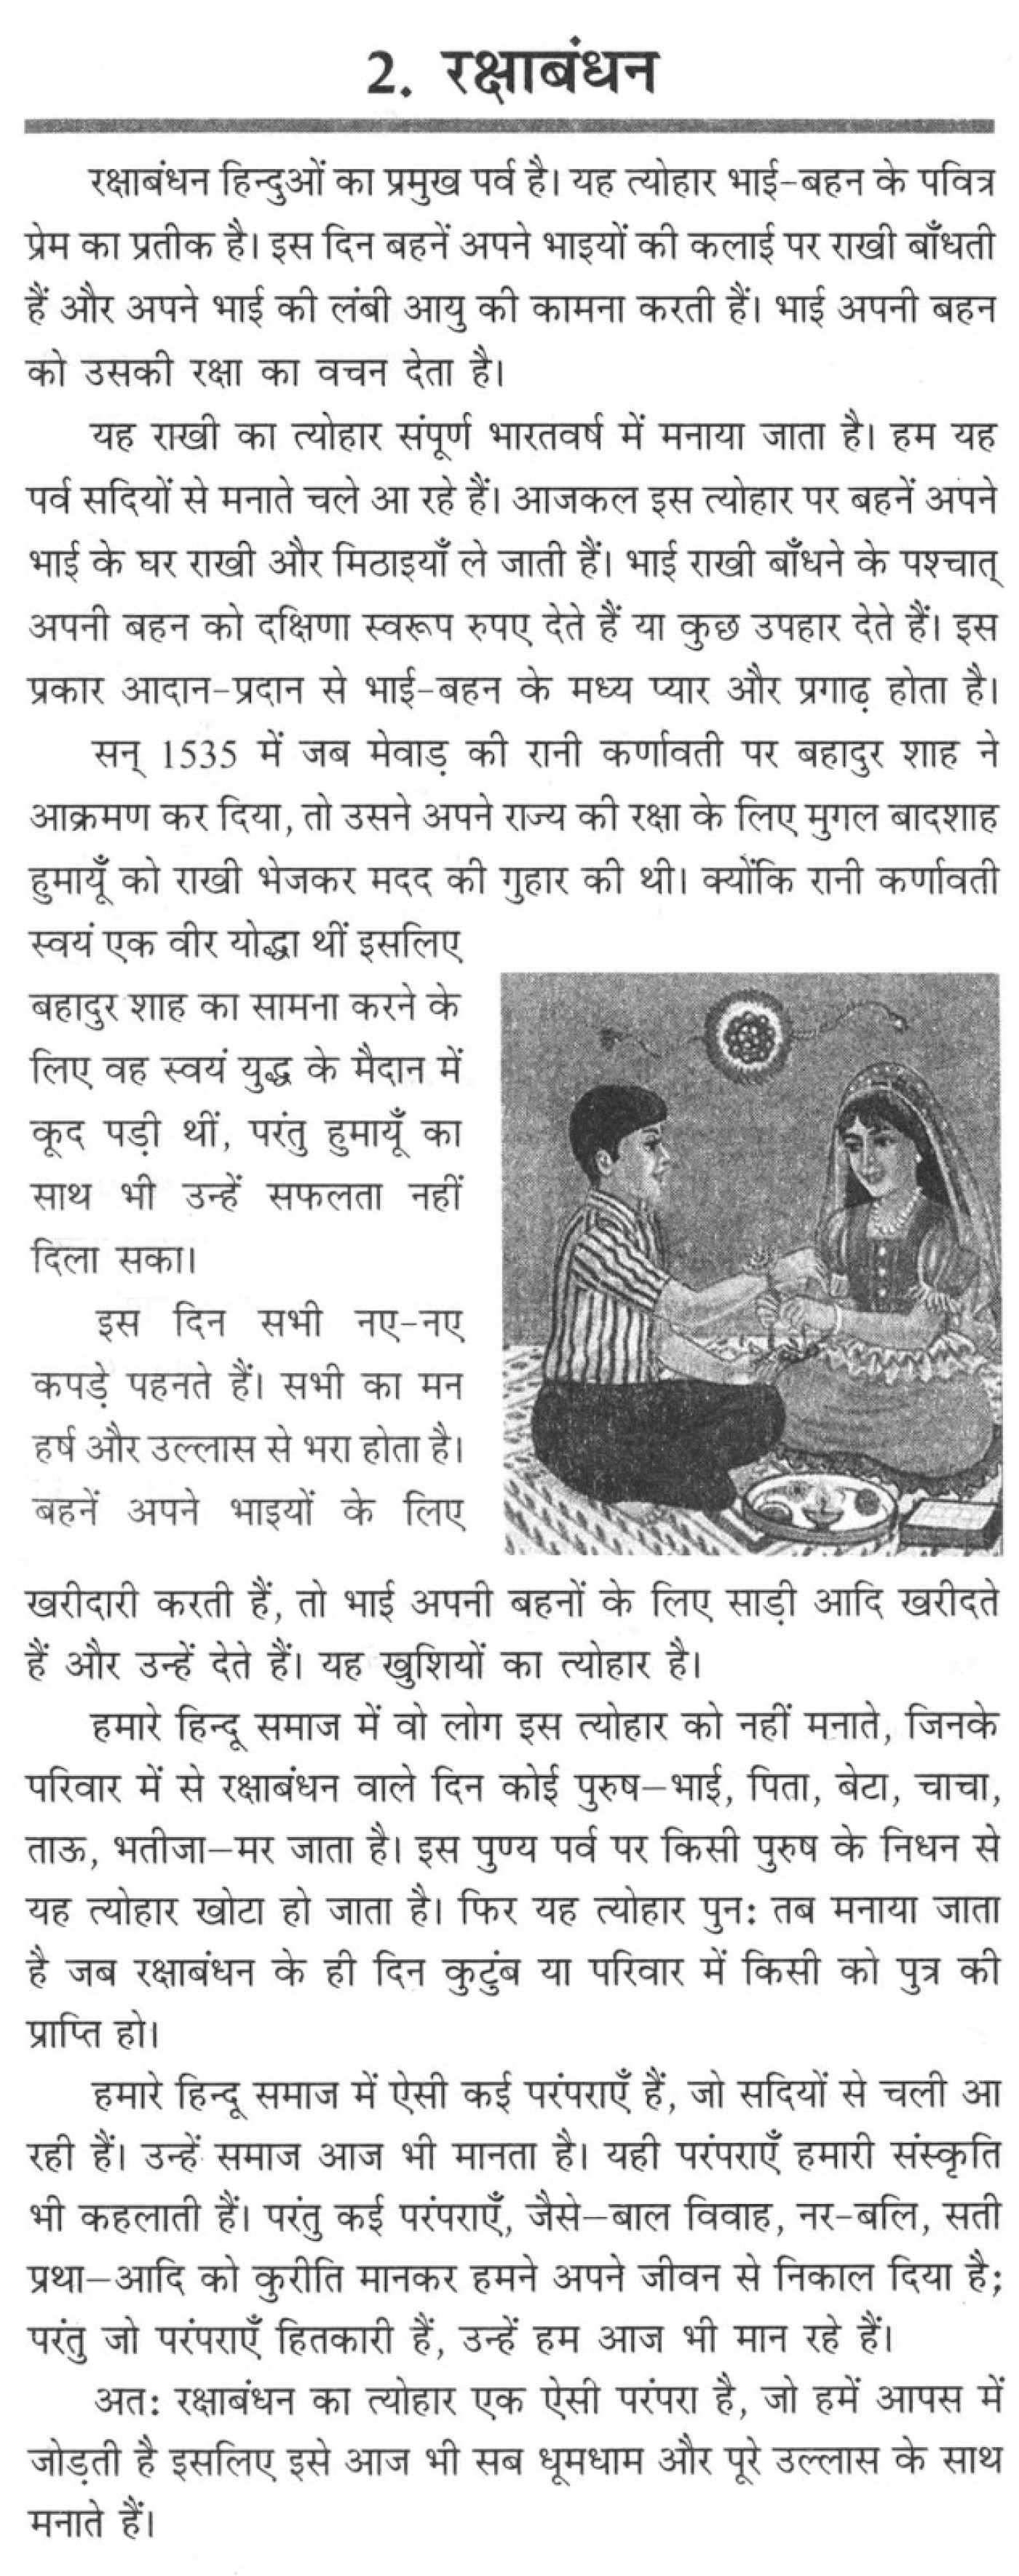 015 Raksha20bandhan20essay20in20hindi202016 Essay Example Good Habits In Exceptional Hindi Food Wikipedia 1400